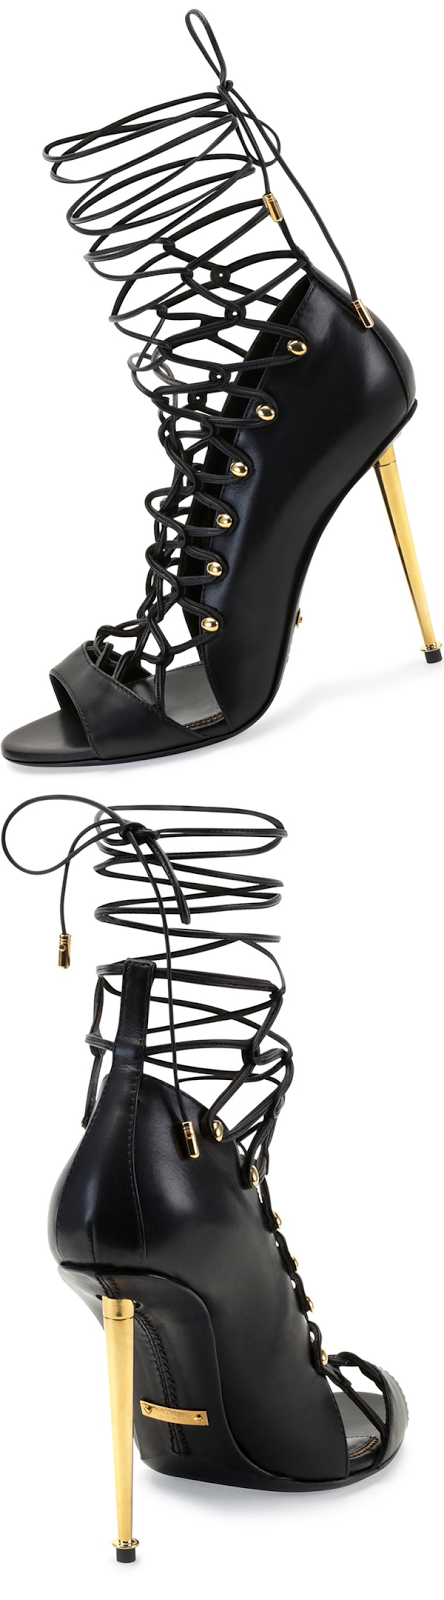 Tom Ford Calfskin Lace-Up Sandal